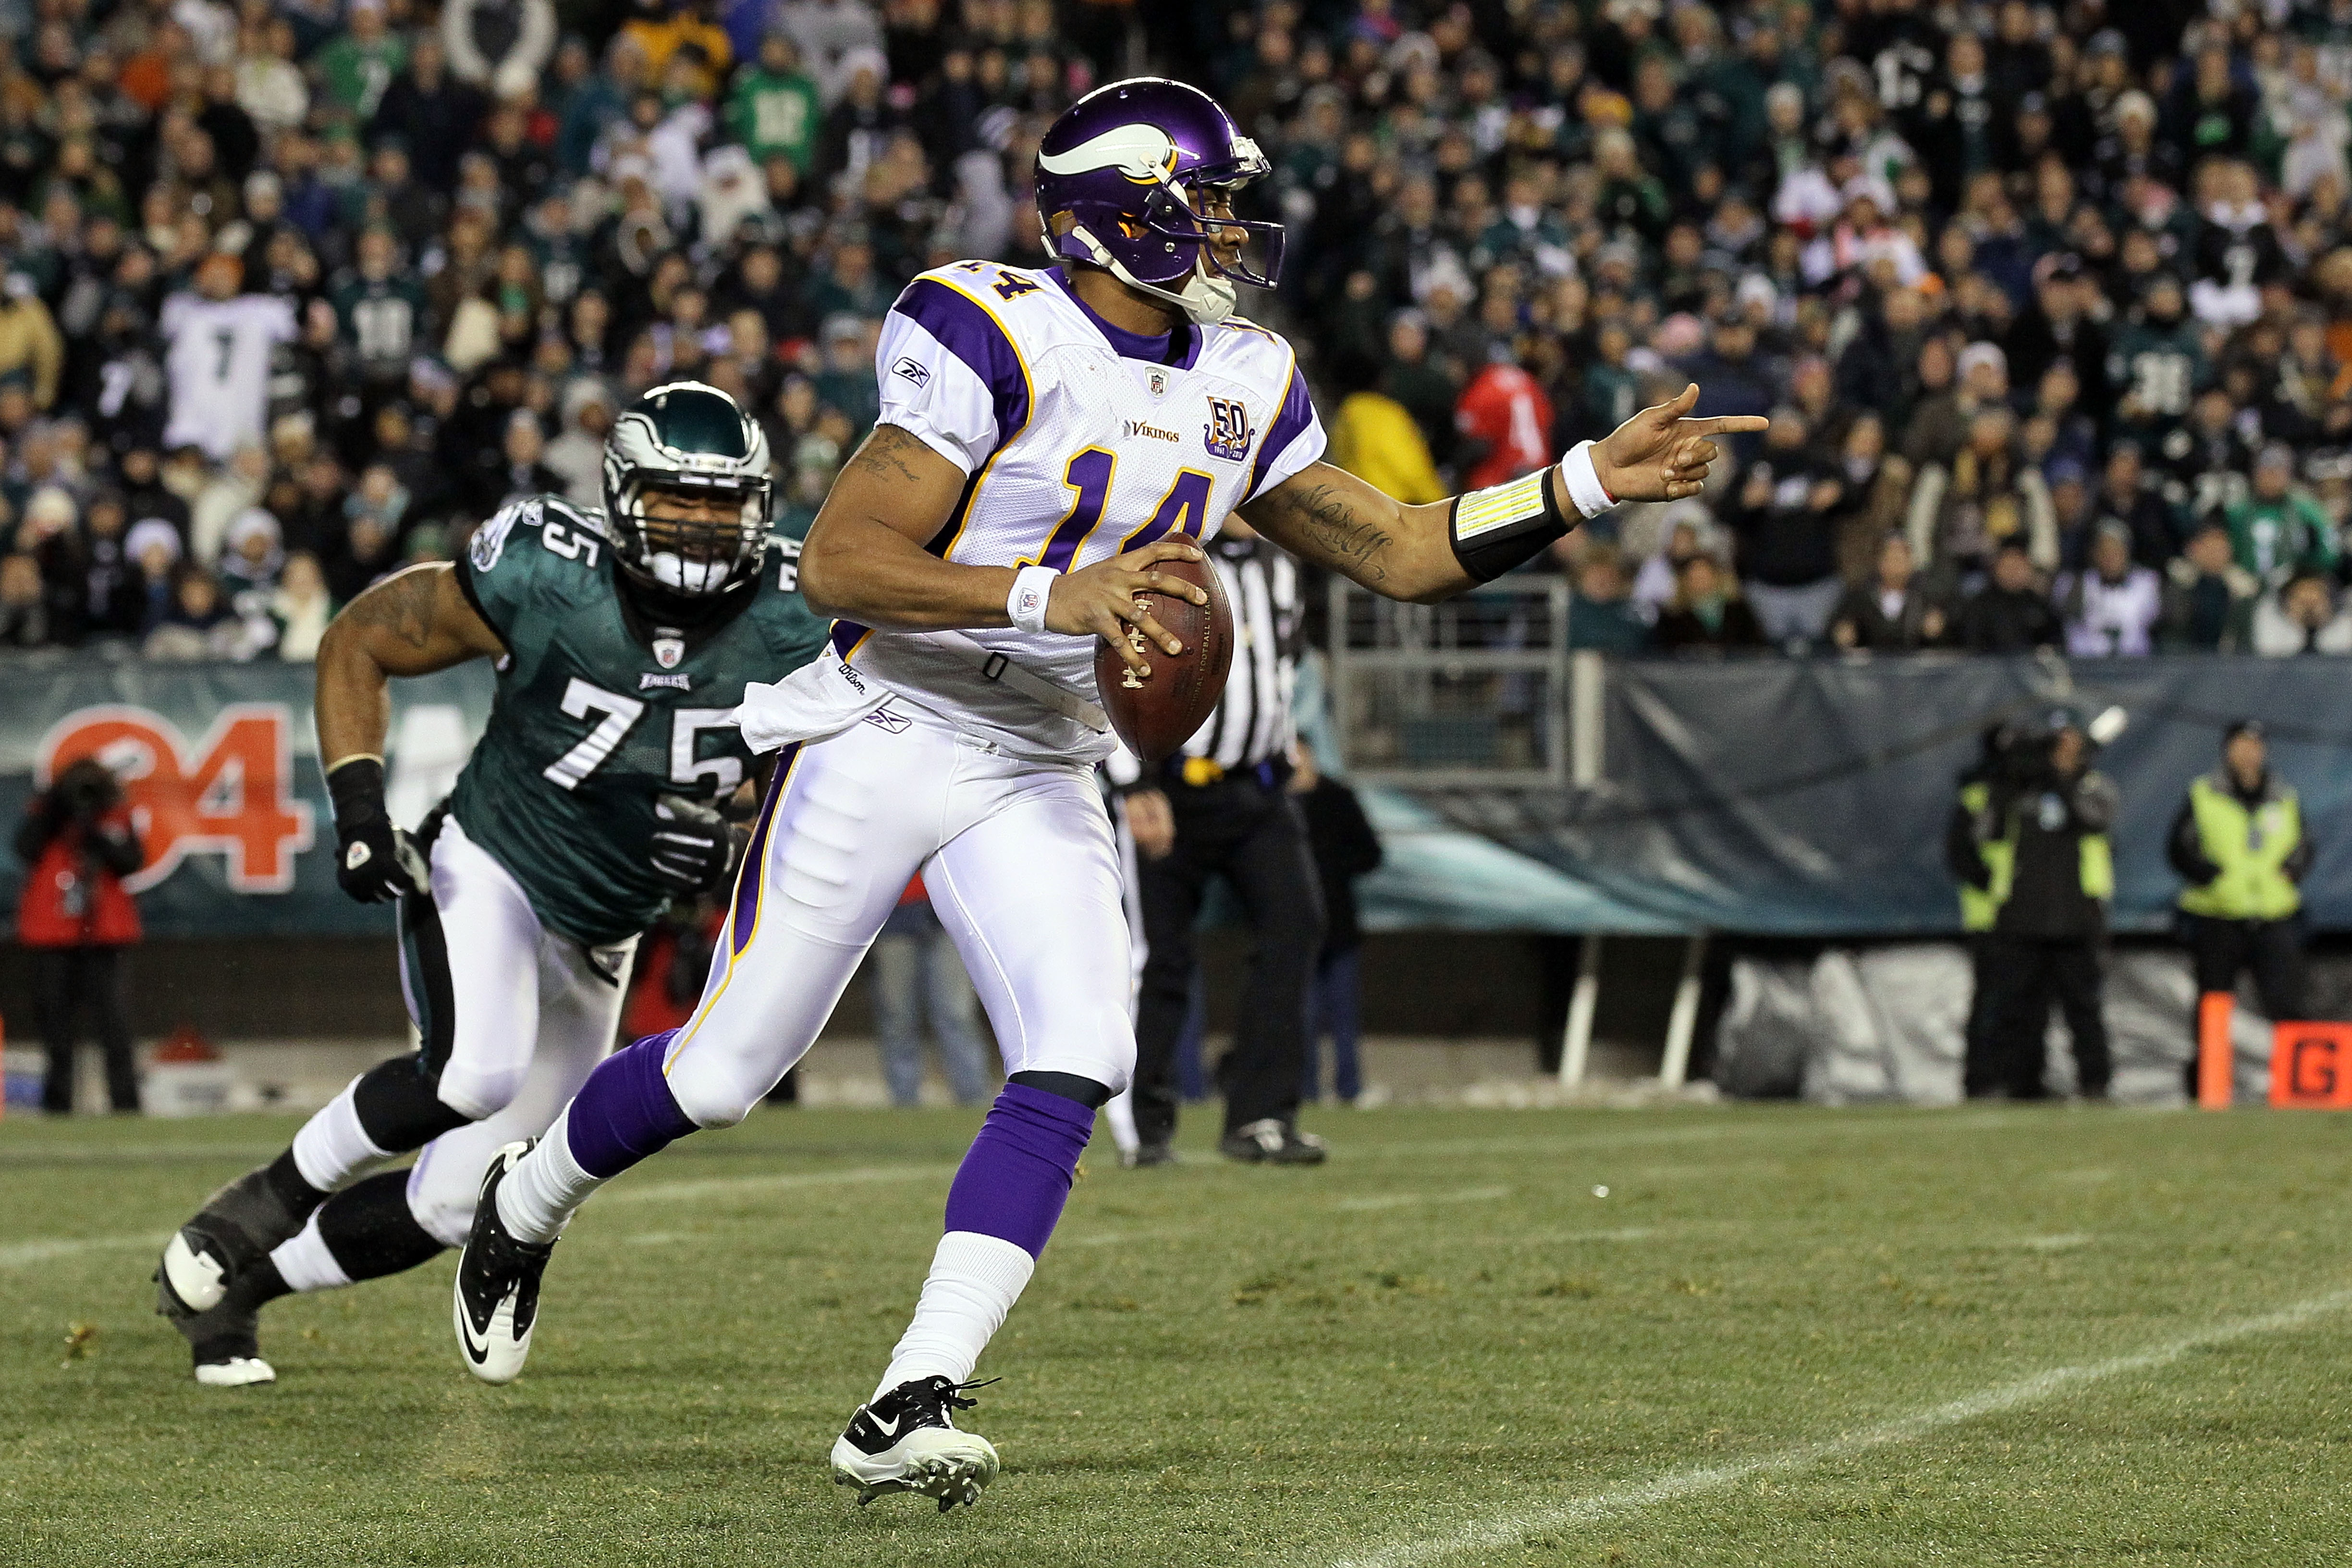 PHILADELPHIA, PA - DECEMBER 26:  Joe Webb #14 of the Minnesota Vikings looks to throw a pass against the Philadelphia Eagles at Lincoln Financial Field on December 26, 2010 in Philadelphia, Pennsylvania.  (Photo by Jim McIsaac/Getty Images)